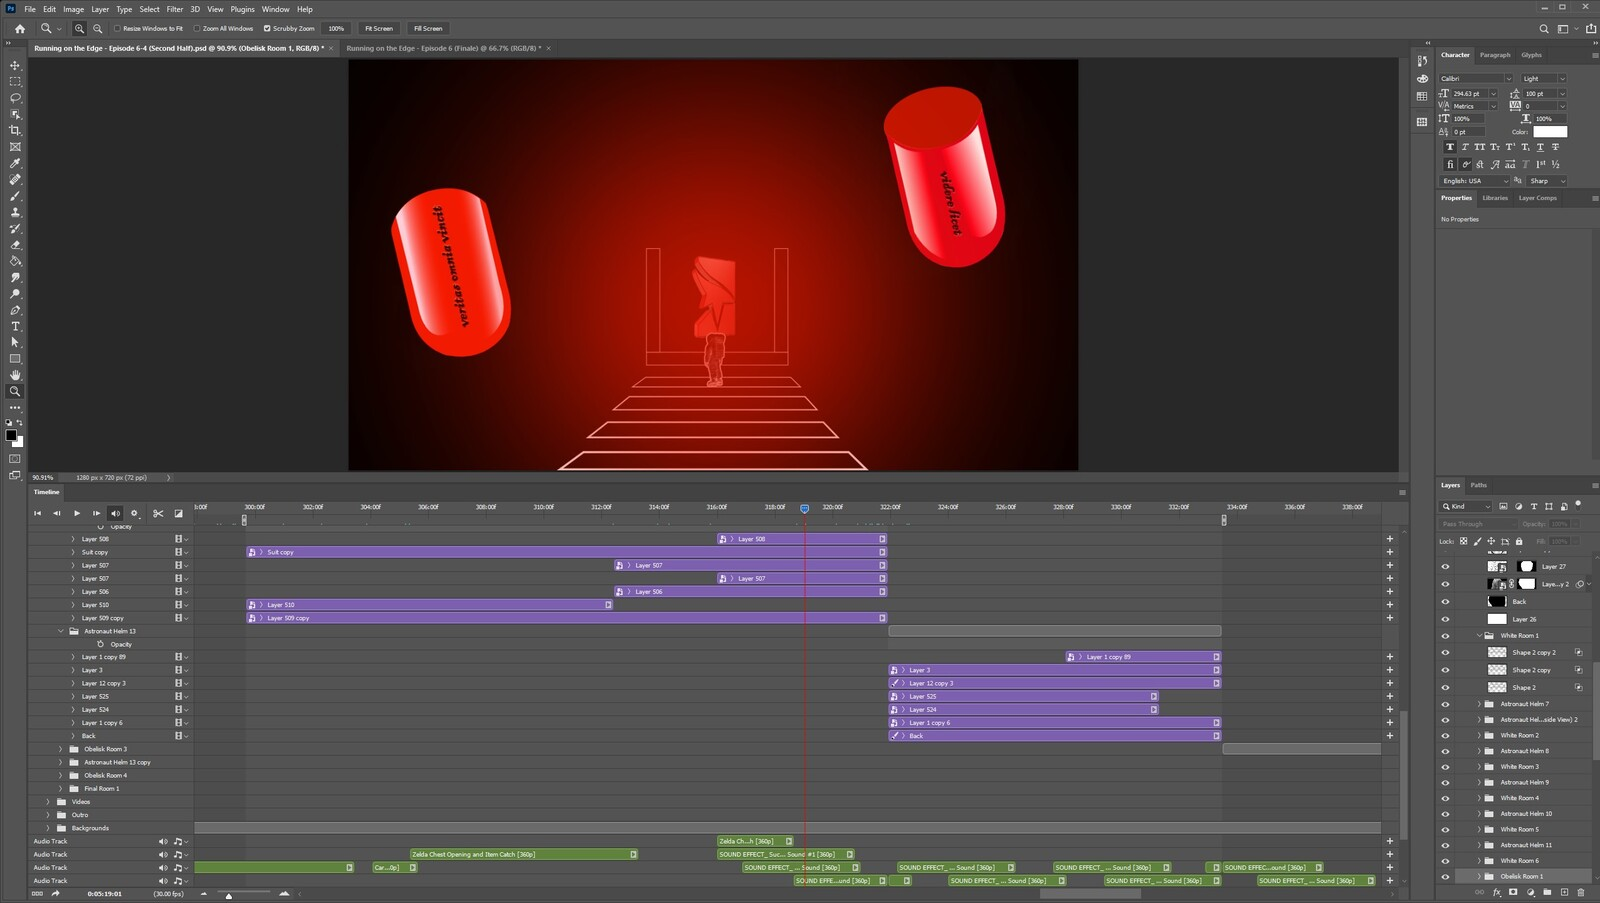 """The """"2020: A Time Oddity, Part 13"""" visual effect within Photoshop video editor"""